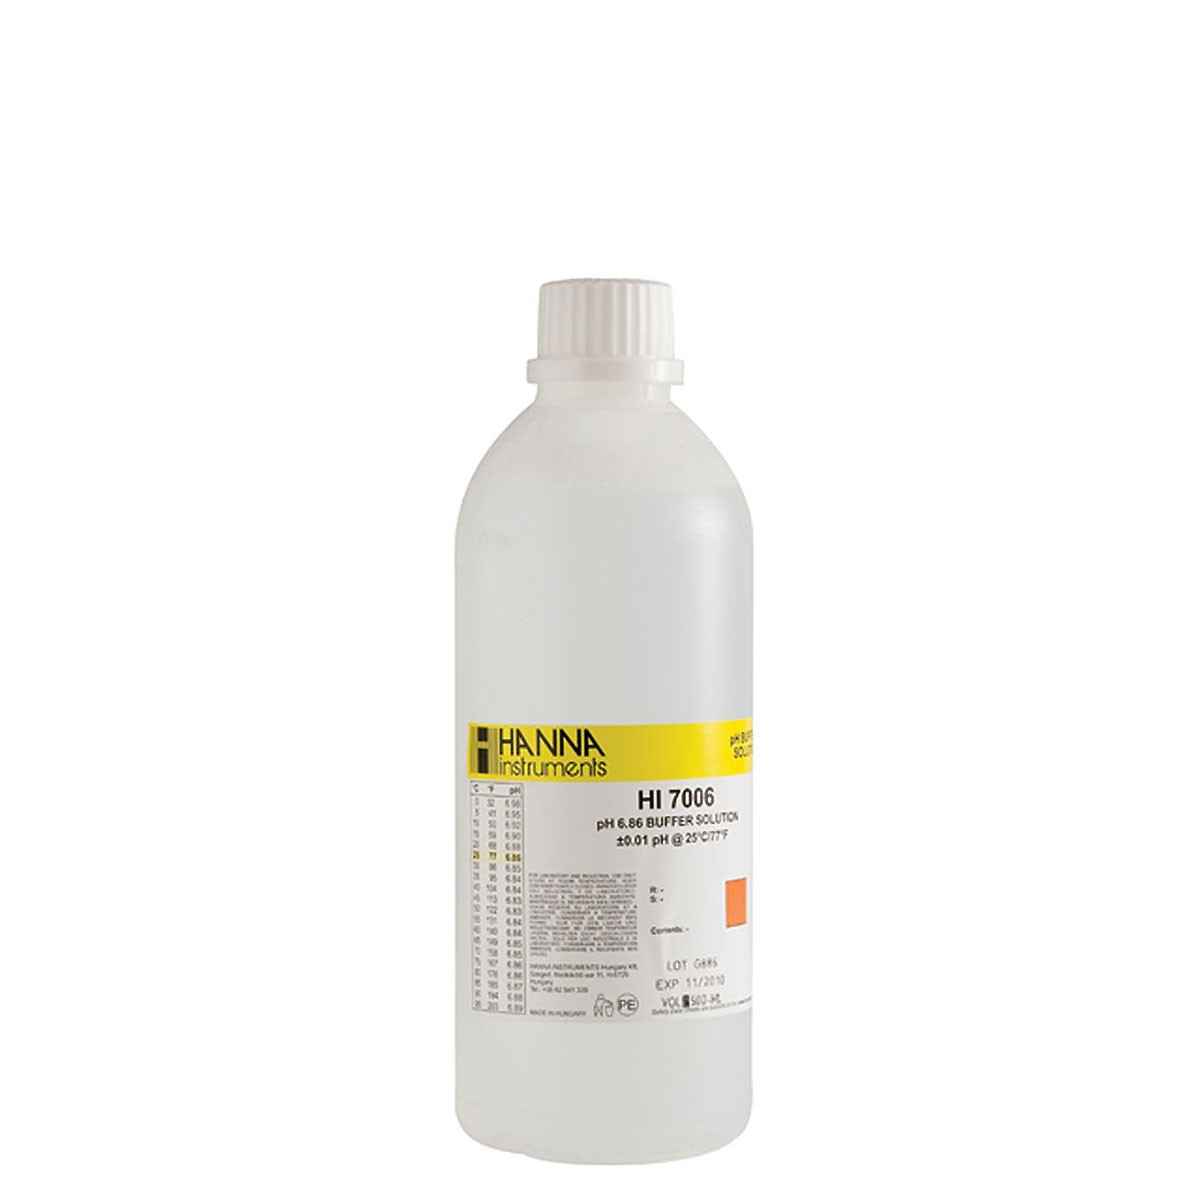 HI7006L - pH 6.86 Calibration Solution (500 mL)